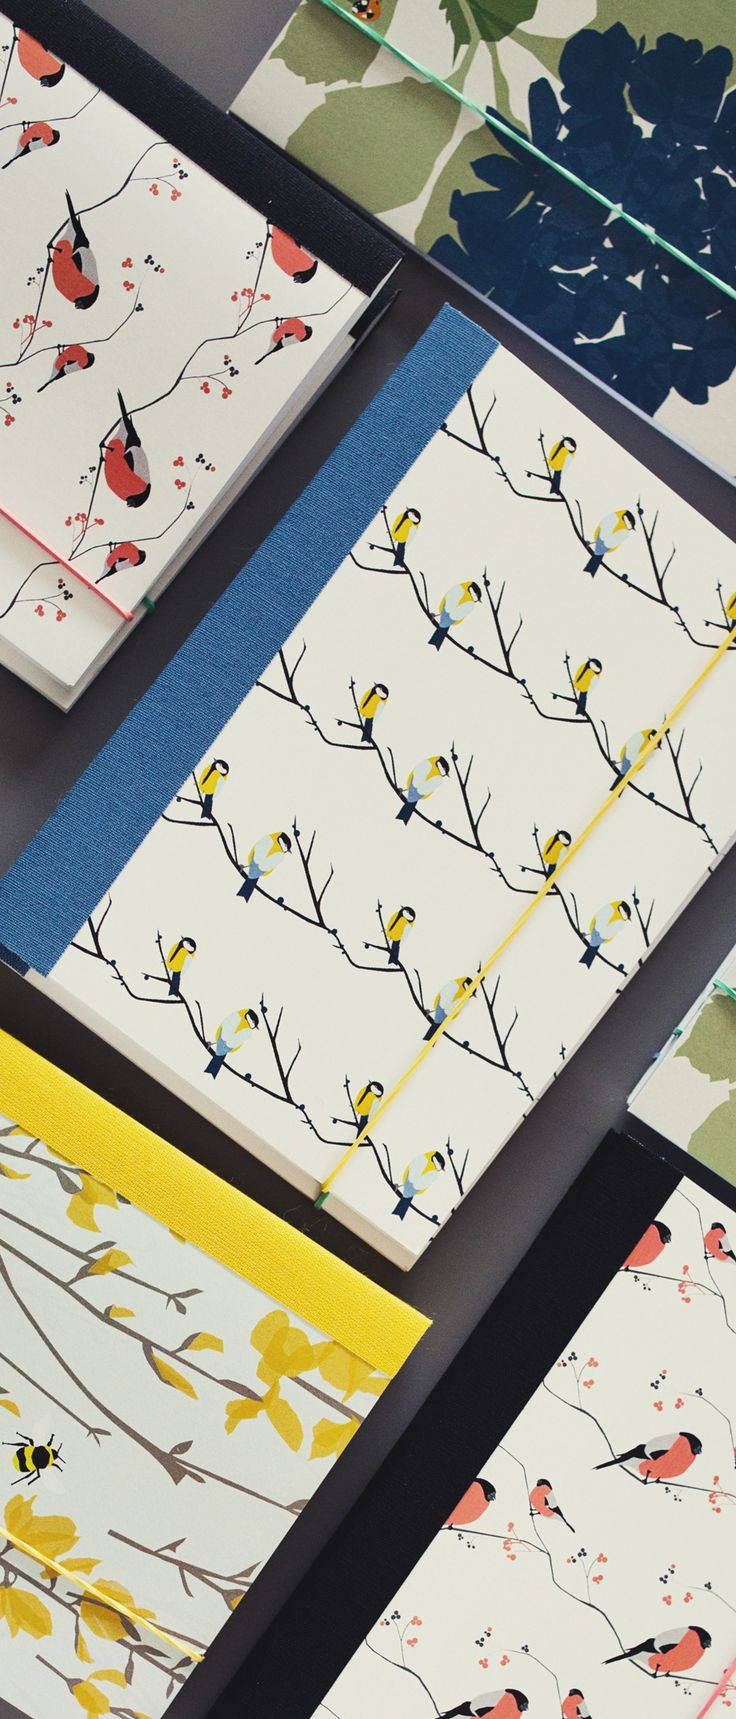 Lorna Syson | Stationery | Notebooks | This handy A6 personalised notebook is a great little gift, the brown paper sleeves can be personalised with your own message or phrase. Great for teacher thank you presents, stocking fillers, secret santa presents and many more perfect gifts. The designs for these notebooks are all taken from Lorna's textile range so are also available as cushions, lampshades, wallpapers and  fabrics.